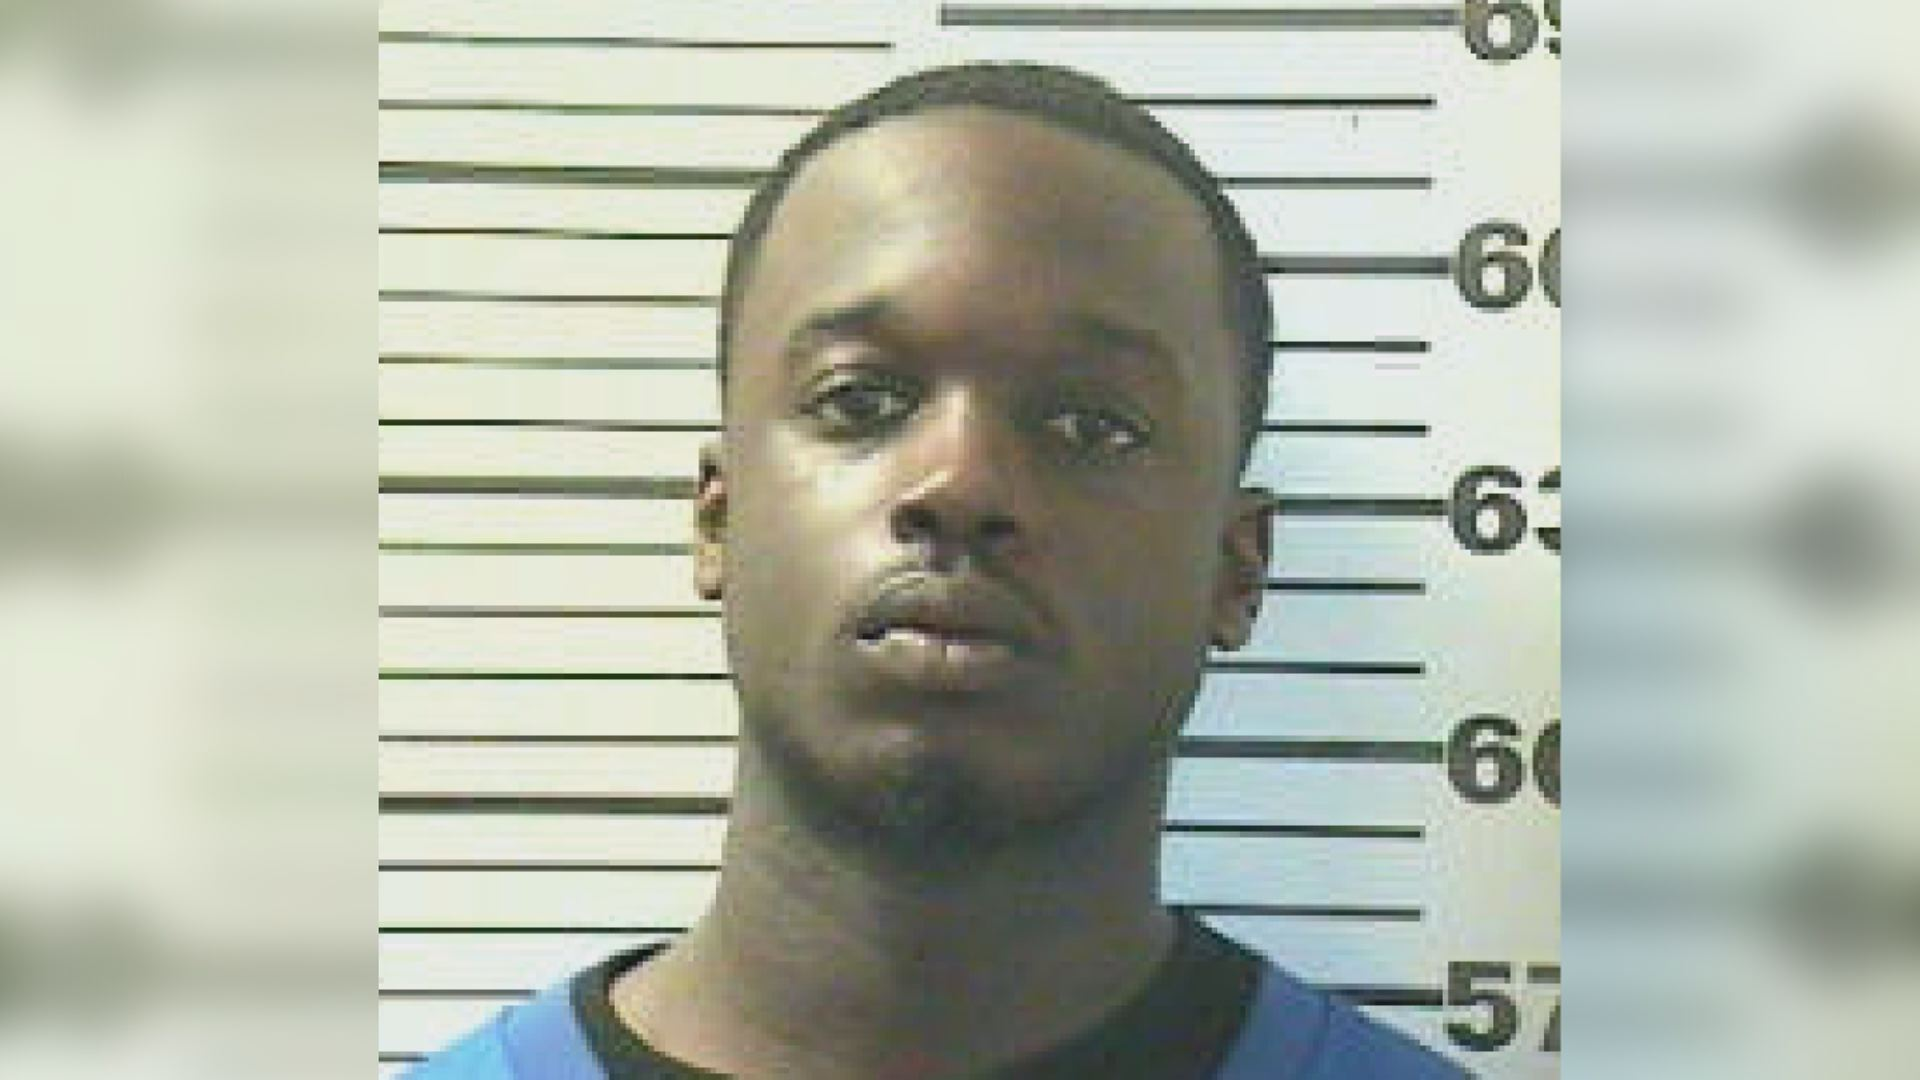 Carjacking suspect arrested in Mobile